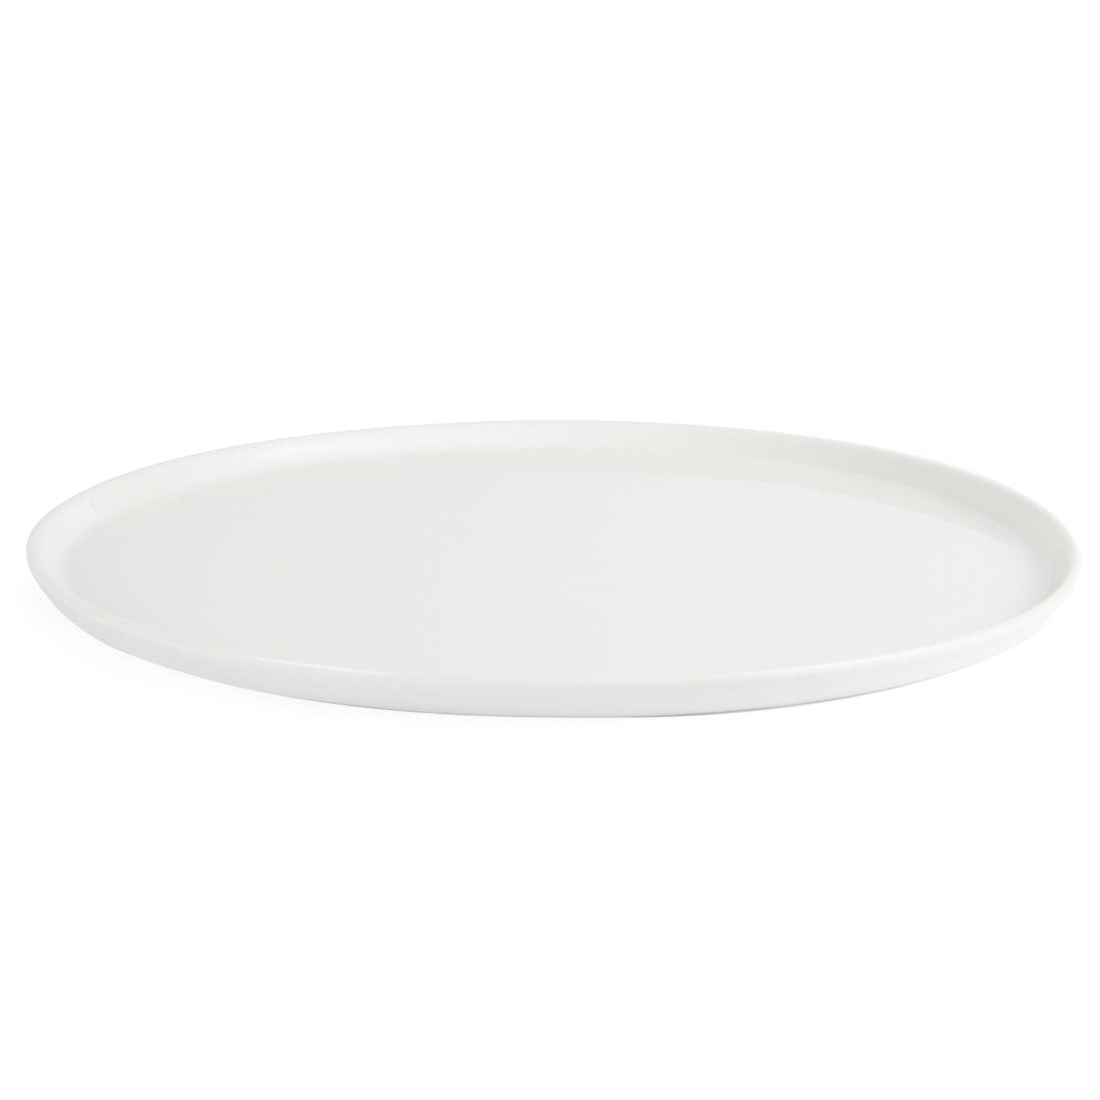 Assiettes à pizza Olympia Whiteware 330mm par 4